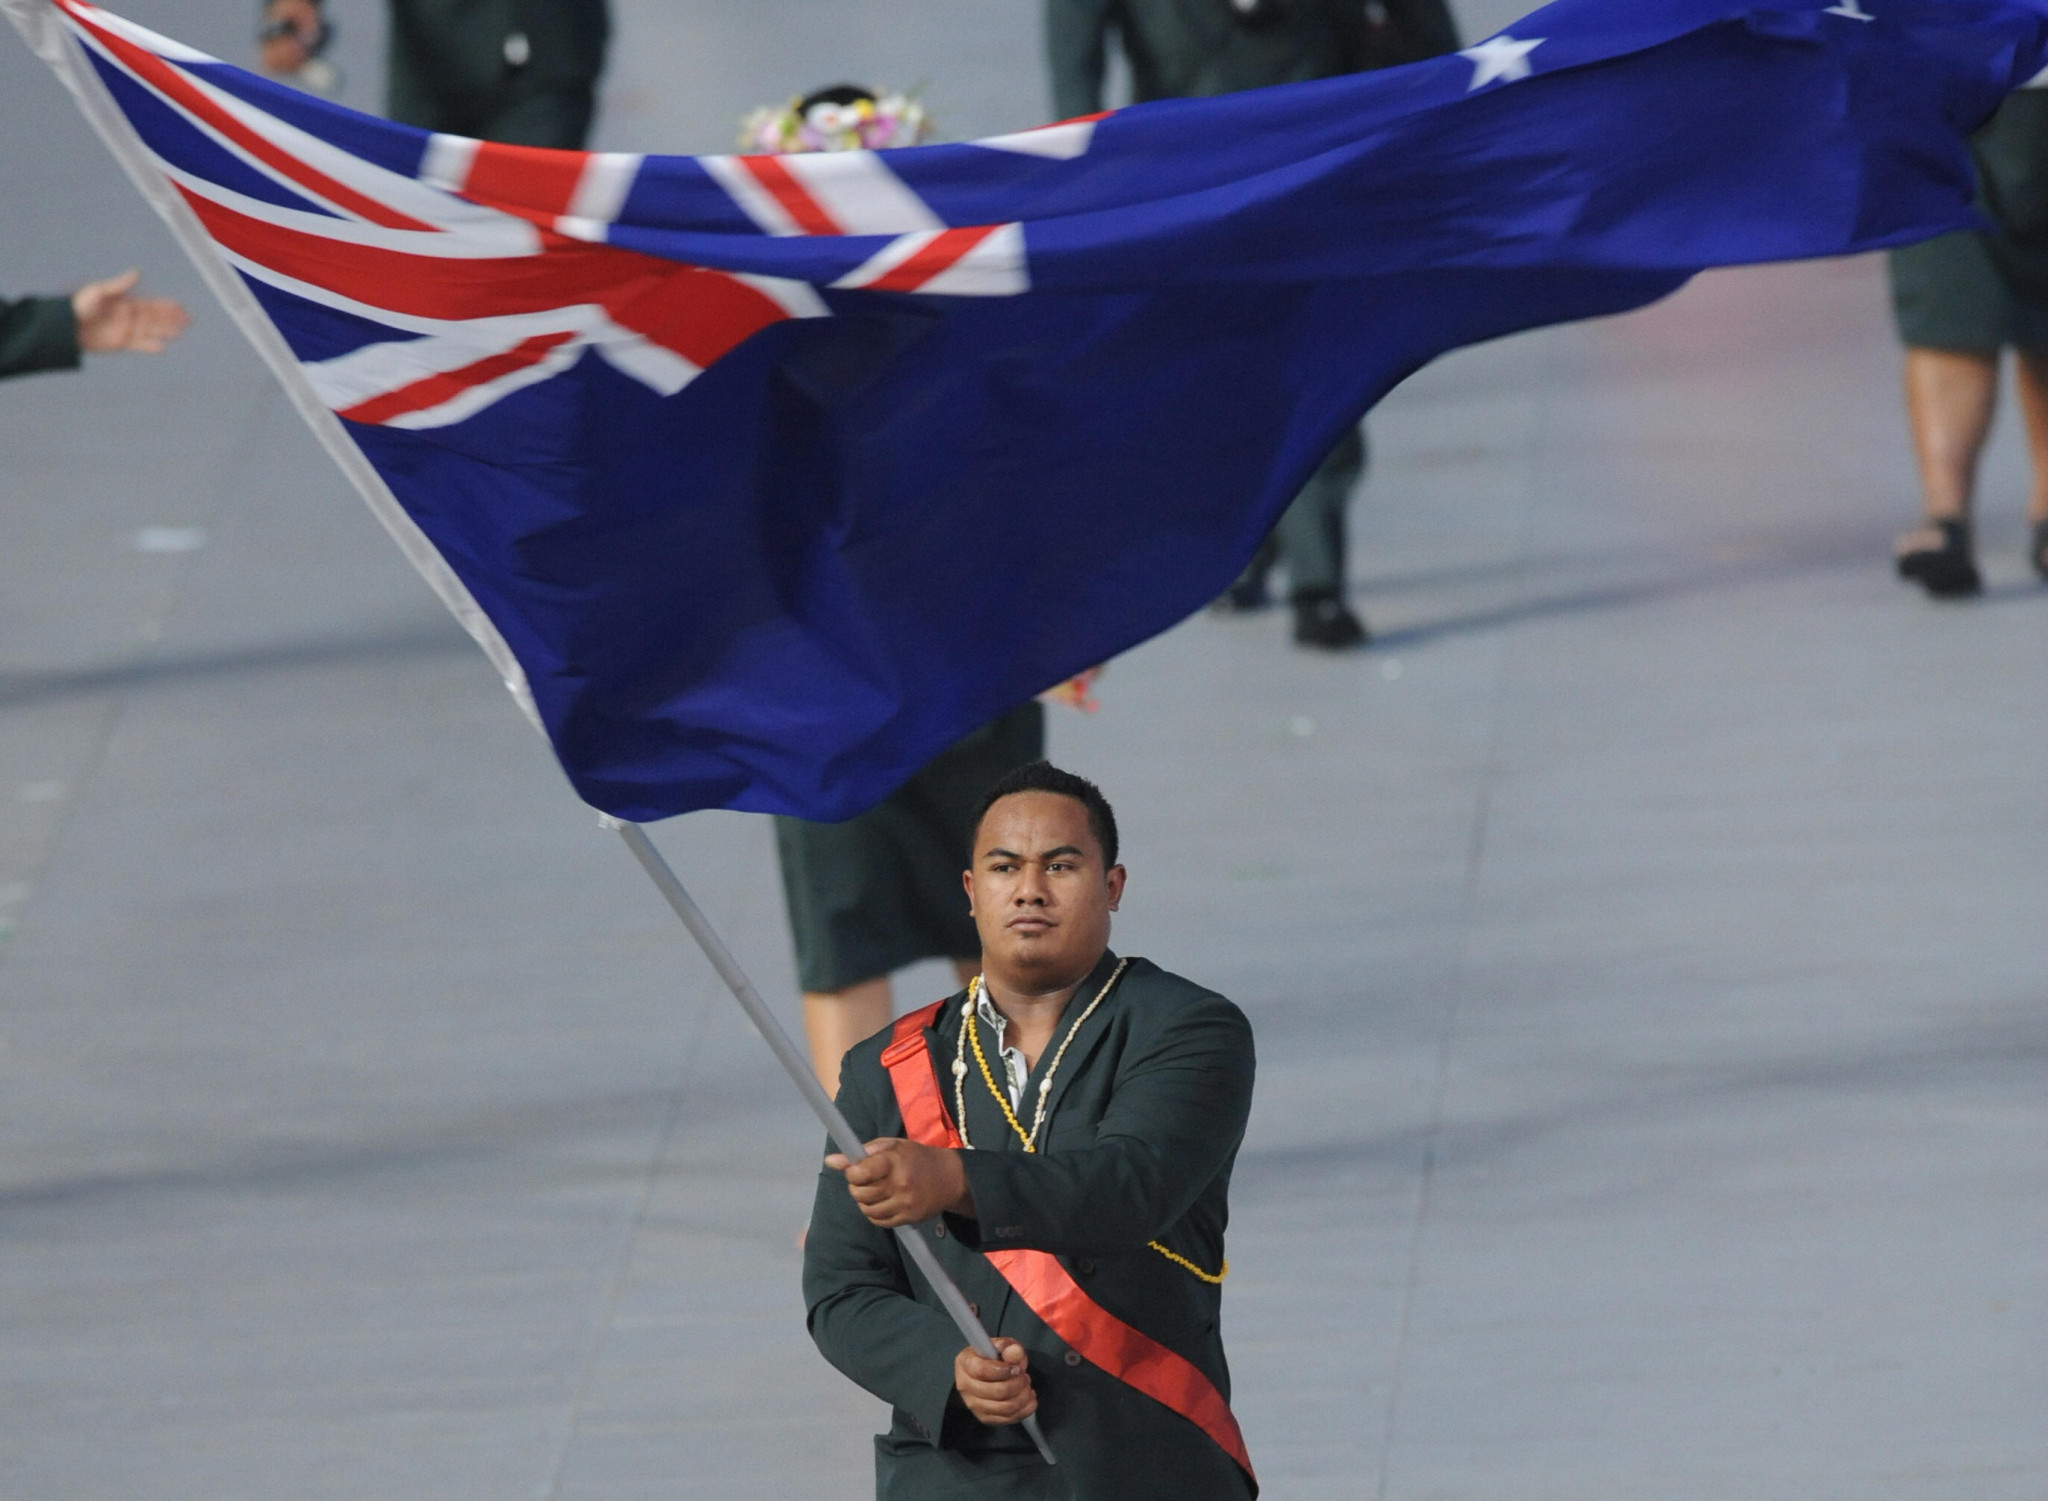 The Cook Islands has competed at every Summer Olympics since Seoul 1988 ©Getty Images